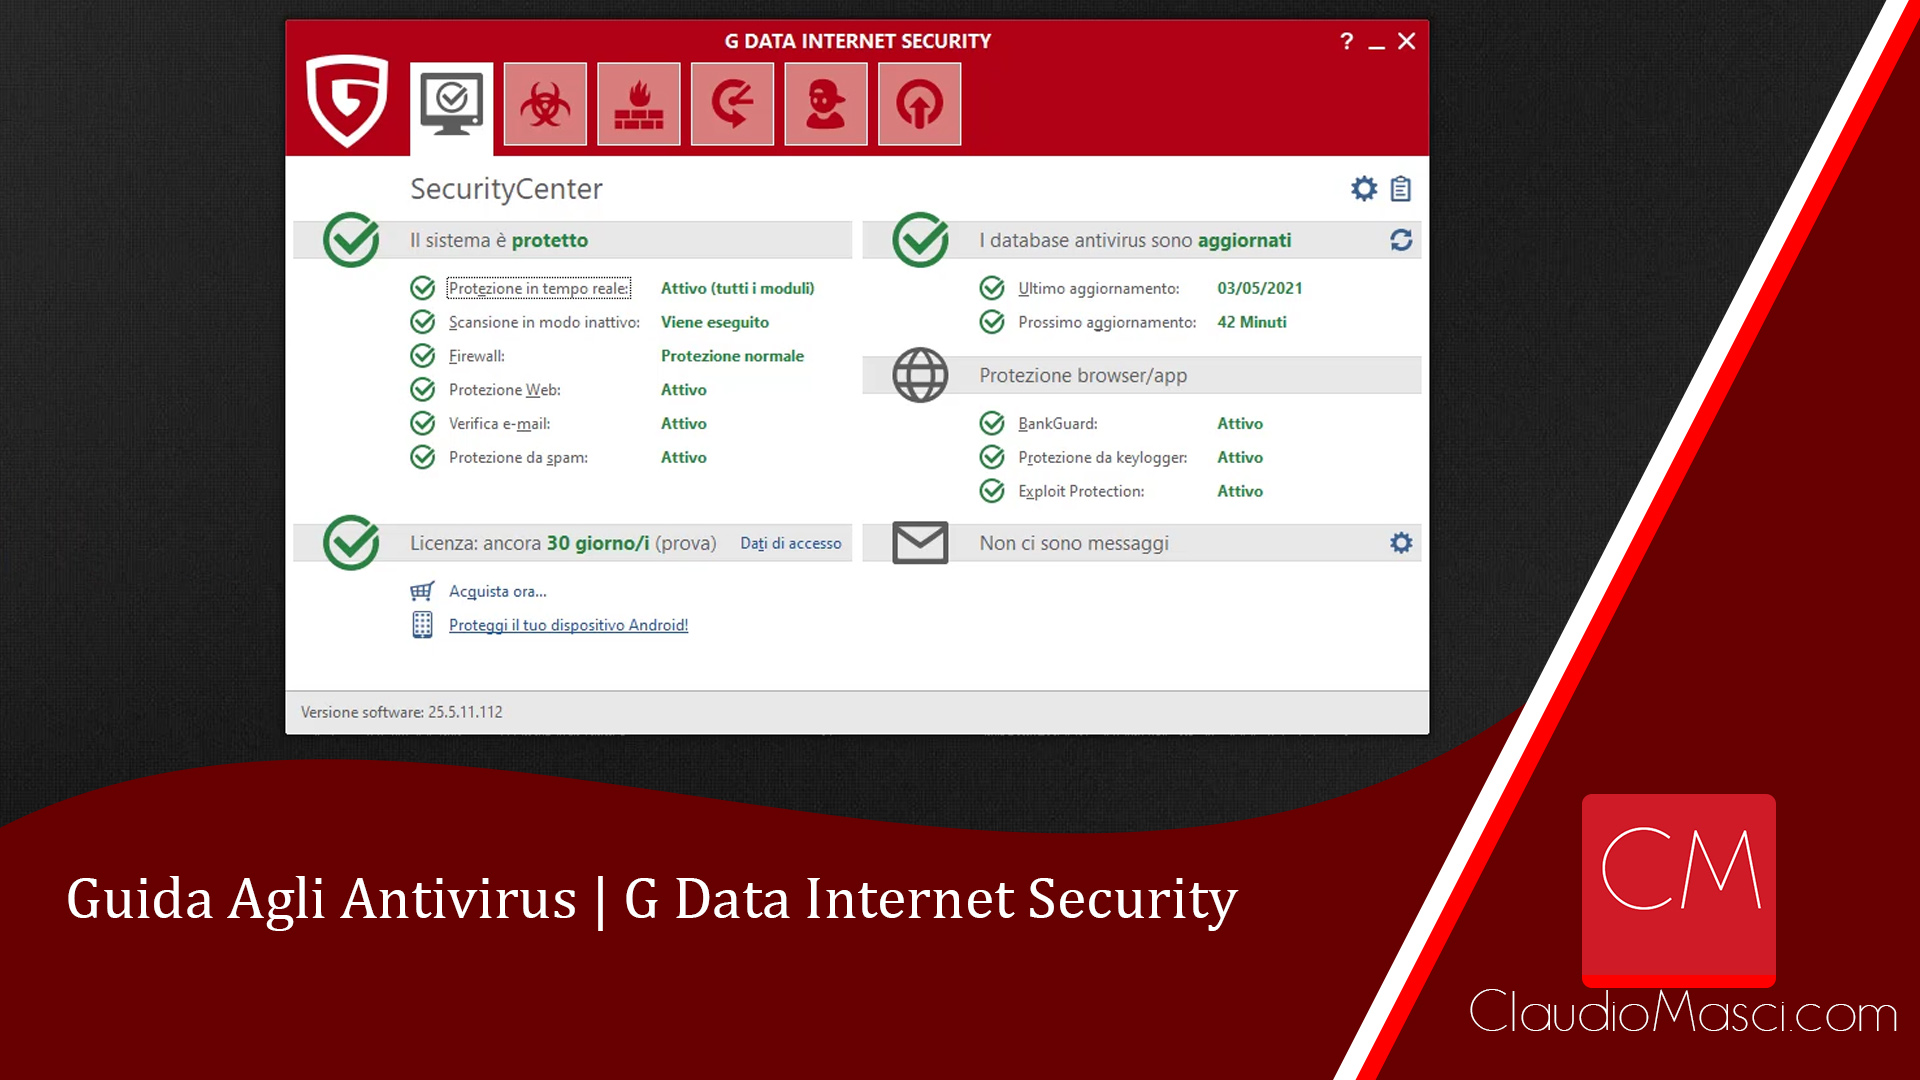 Guida Agli Antivirus - G Data Internet Security